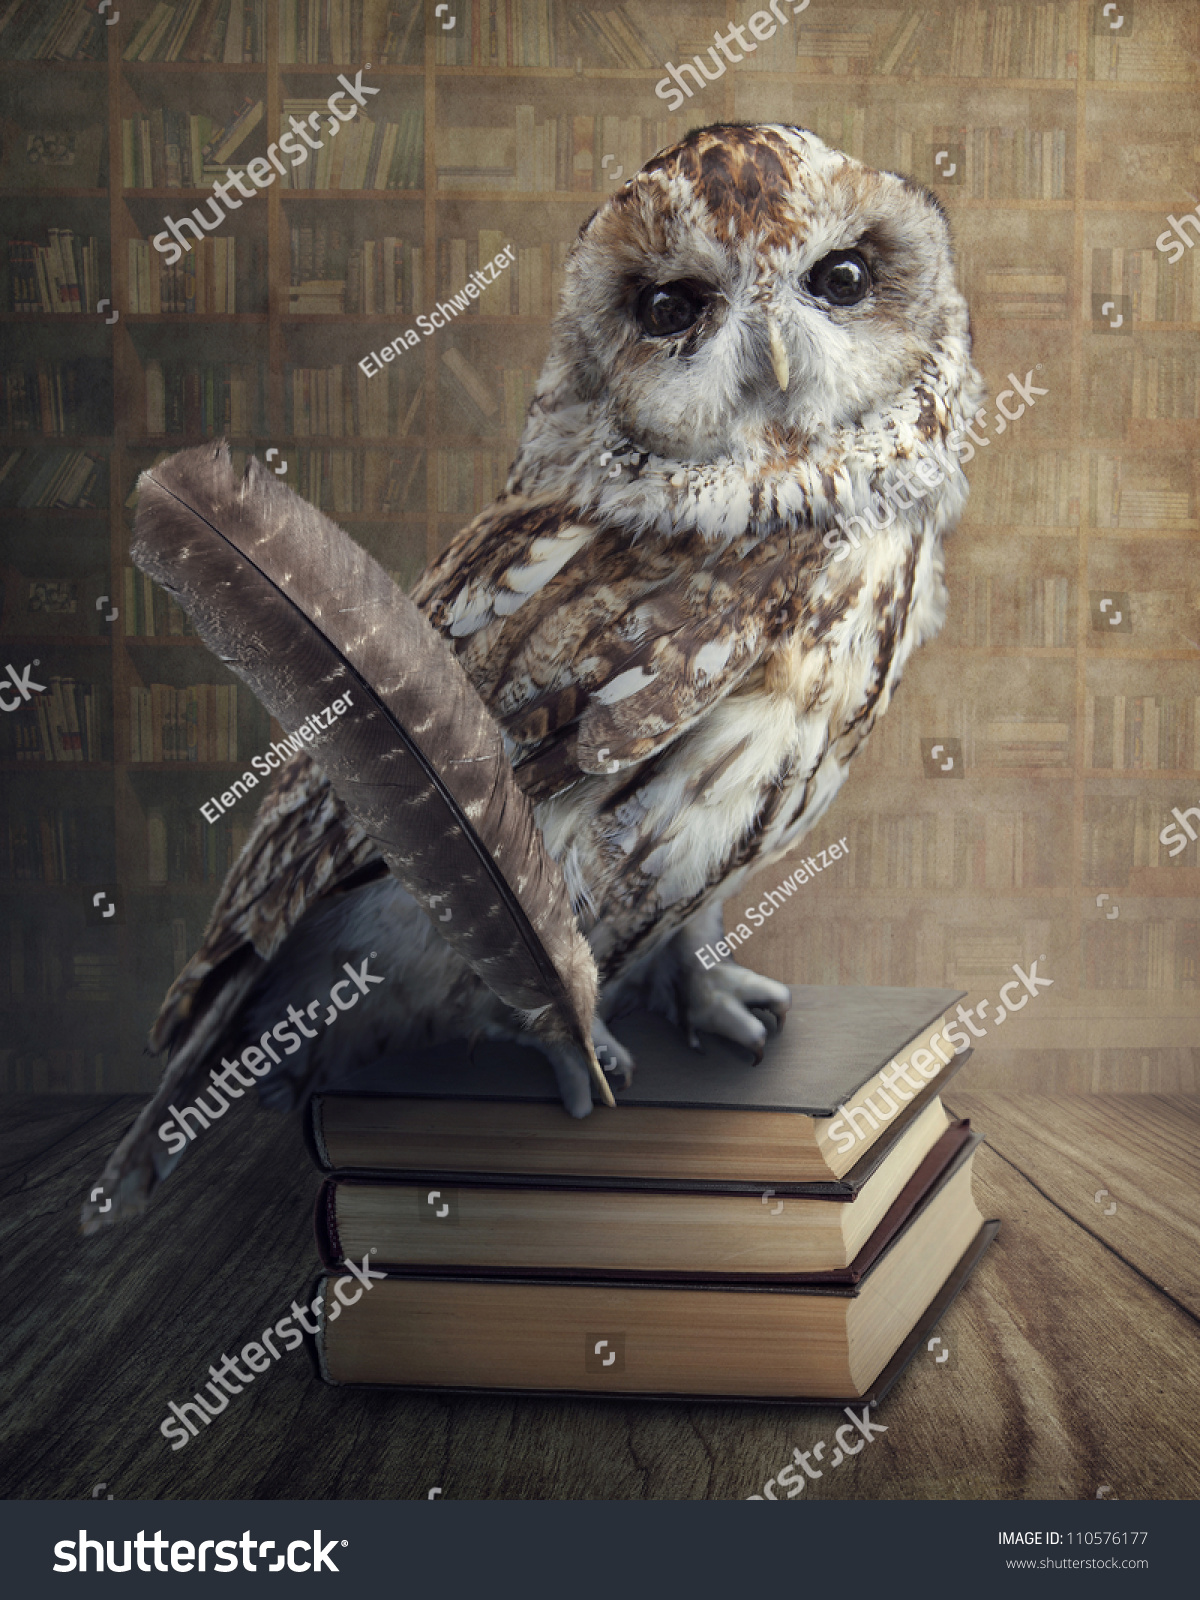 Wise Owl Sitting On Books Stock Photo 110576177 Shutterstock